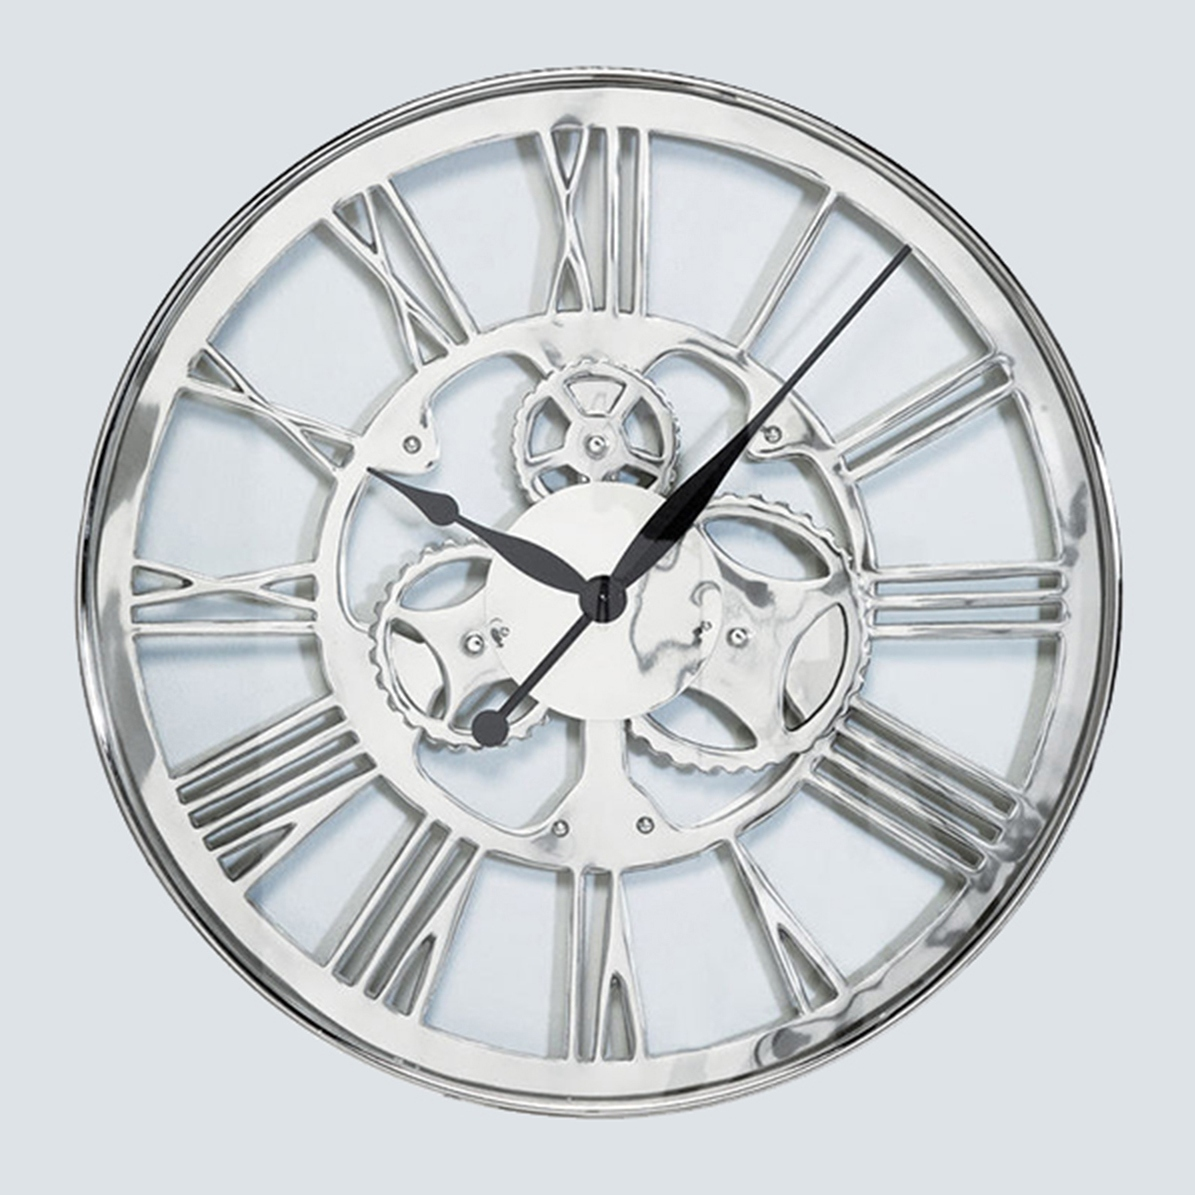 Gear Wall Clock Small 60cm Wall Clocks Fishpools